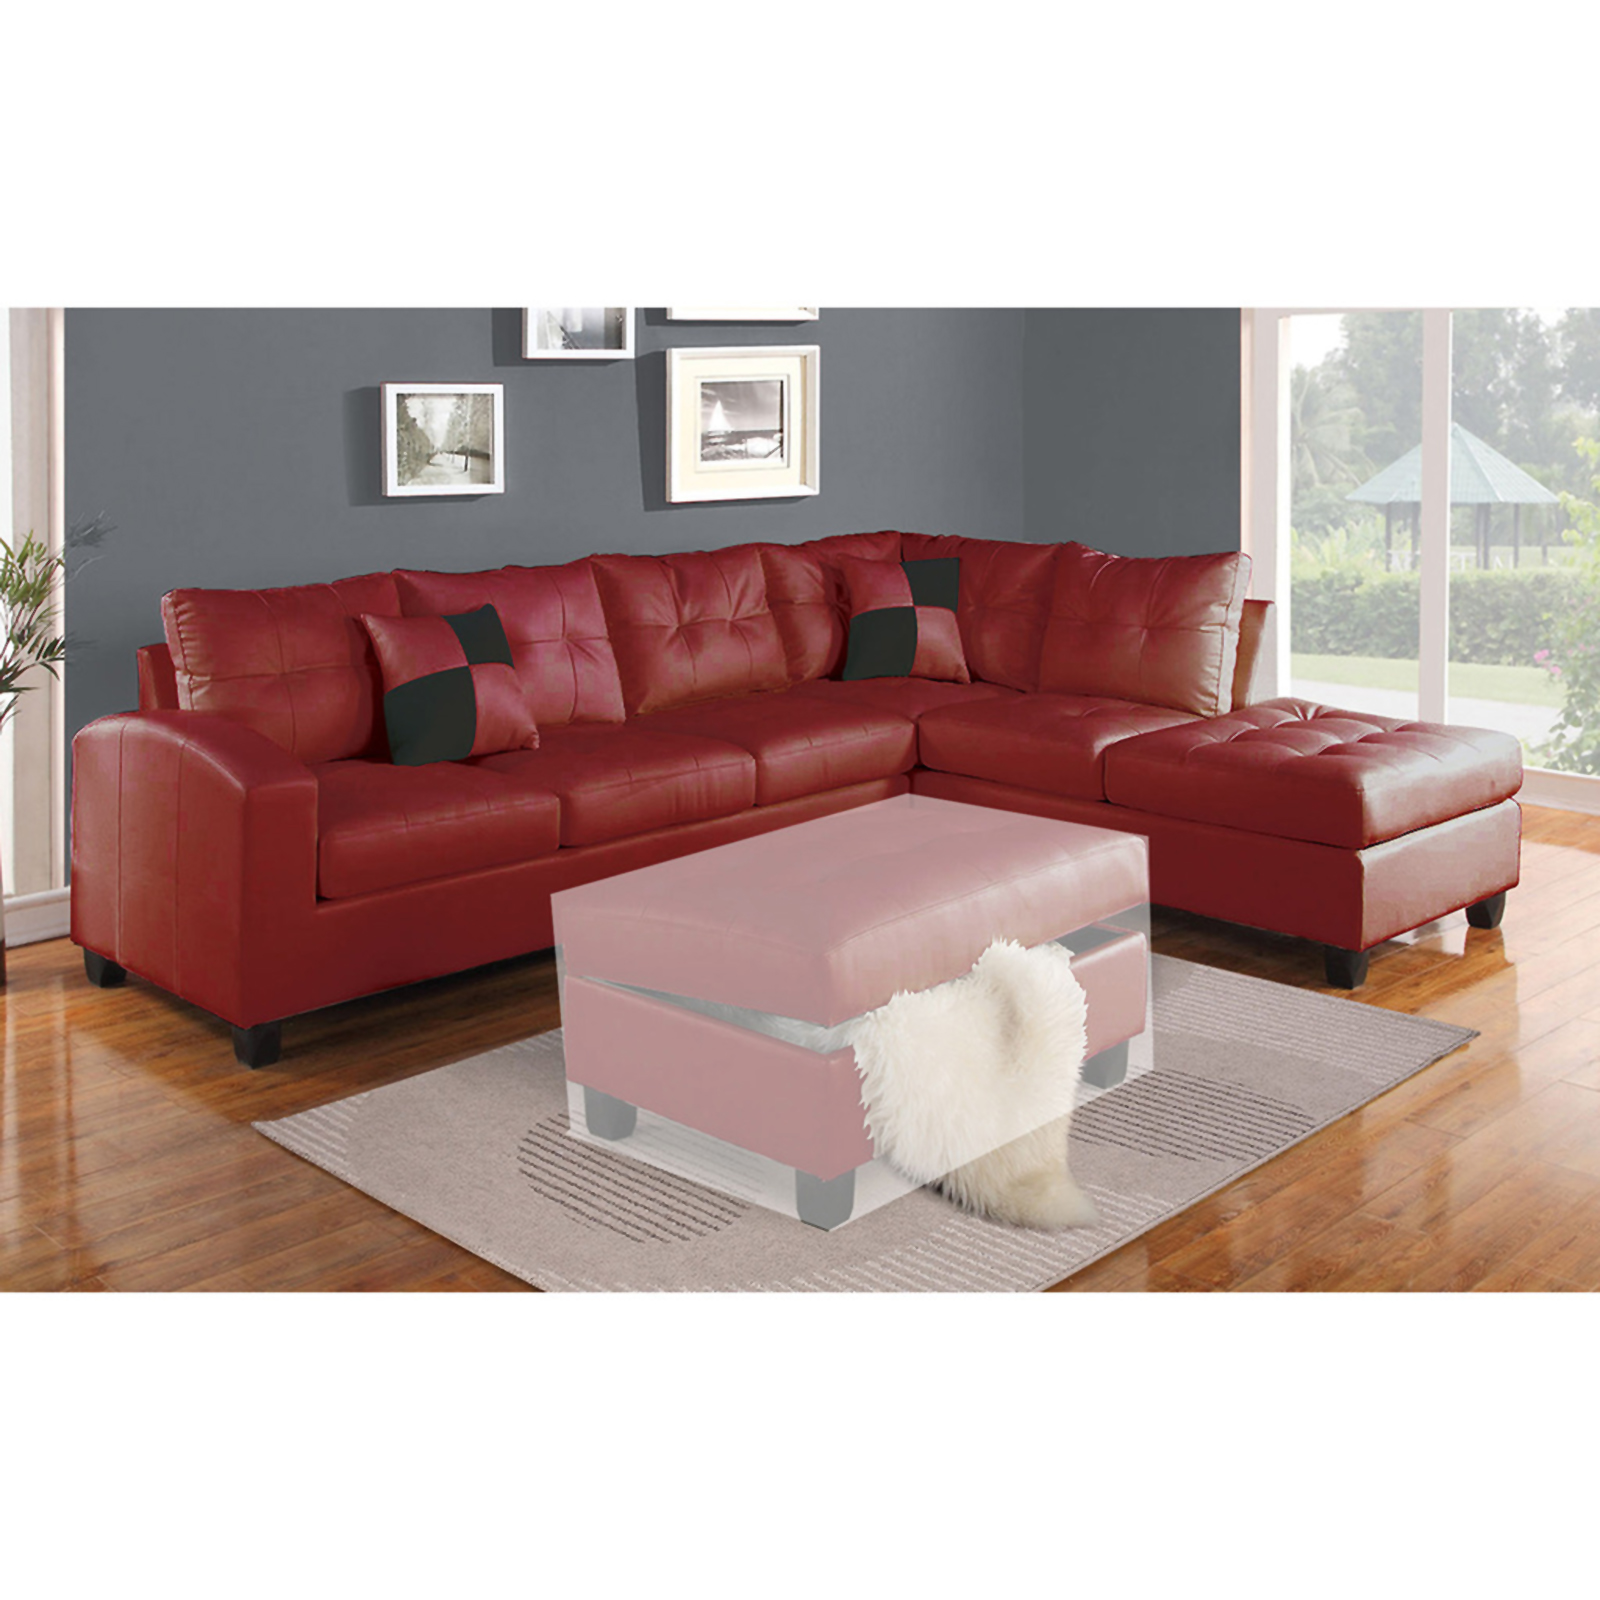 red sectional sofa leather free shipping talentneeds